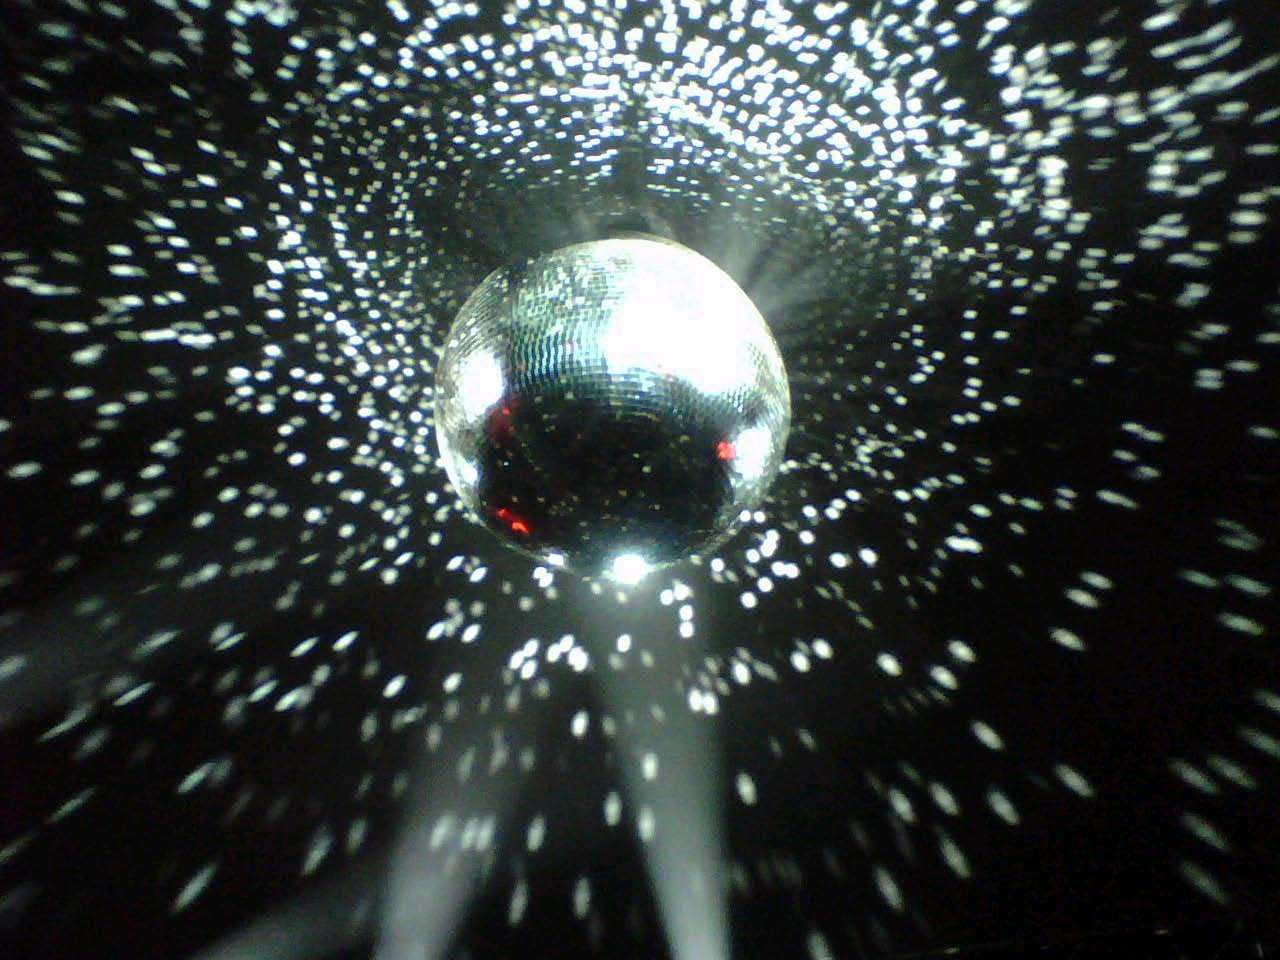 disco hd wallpapers - photo #17